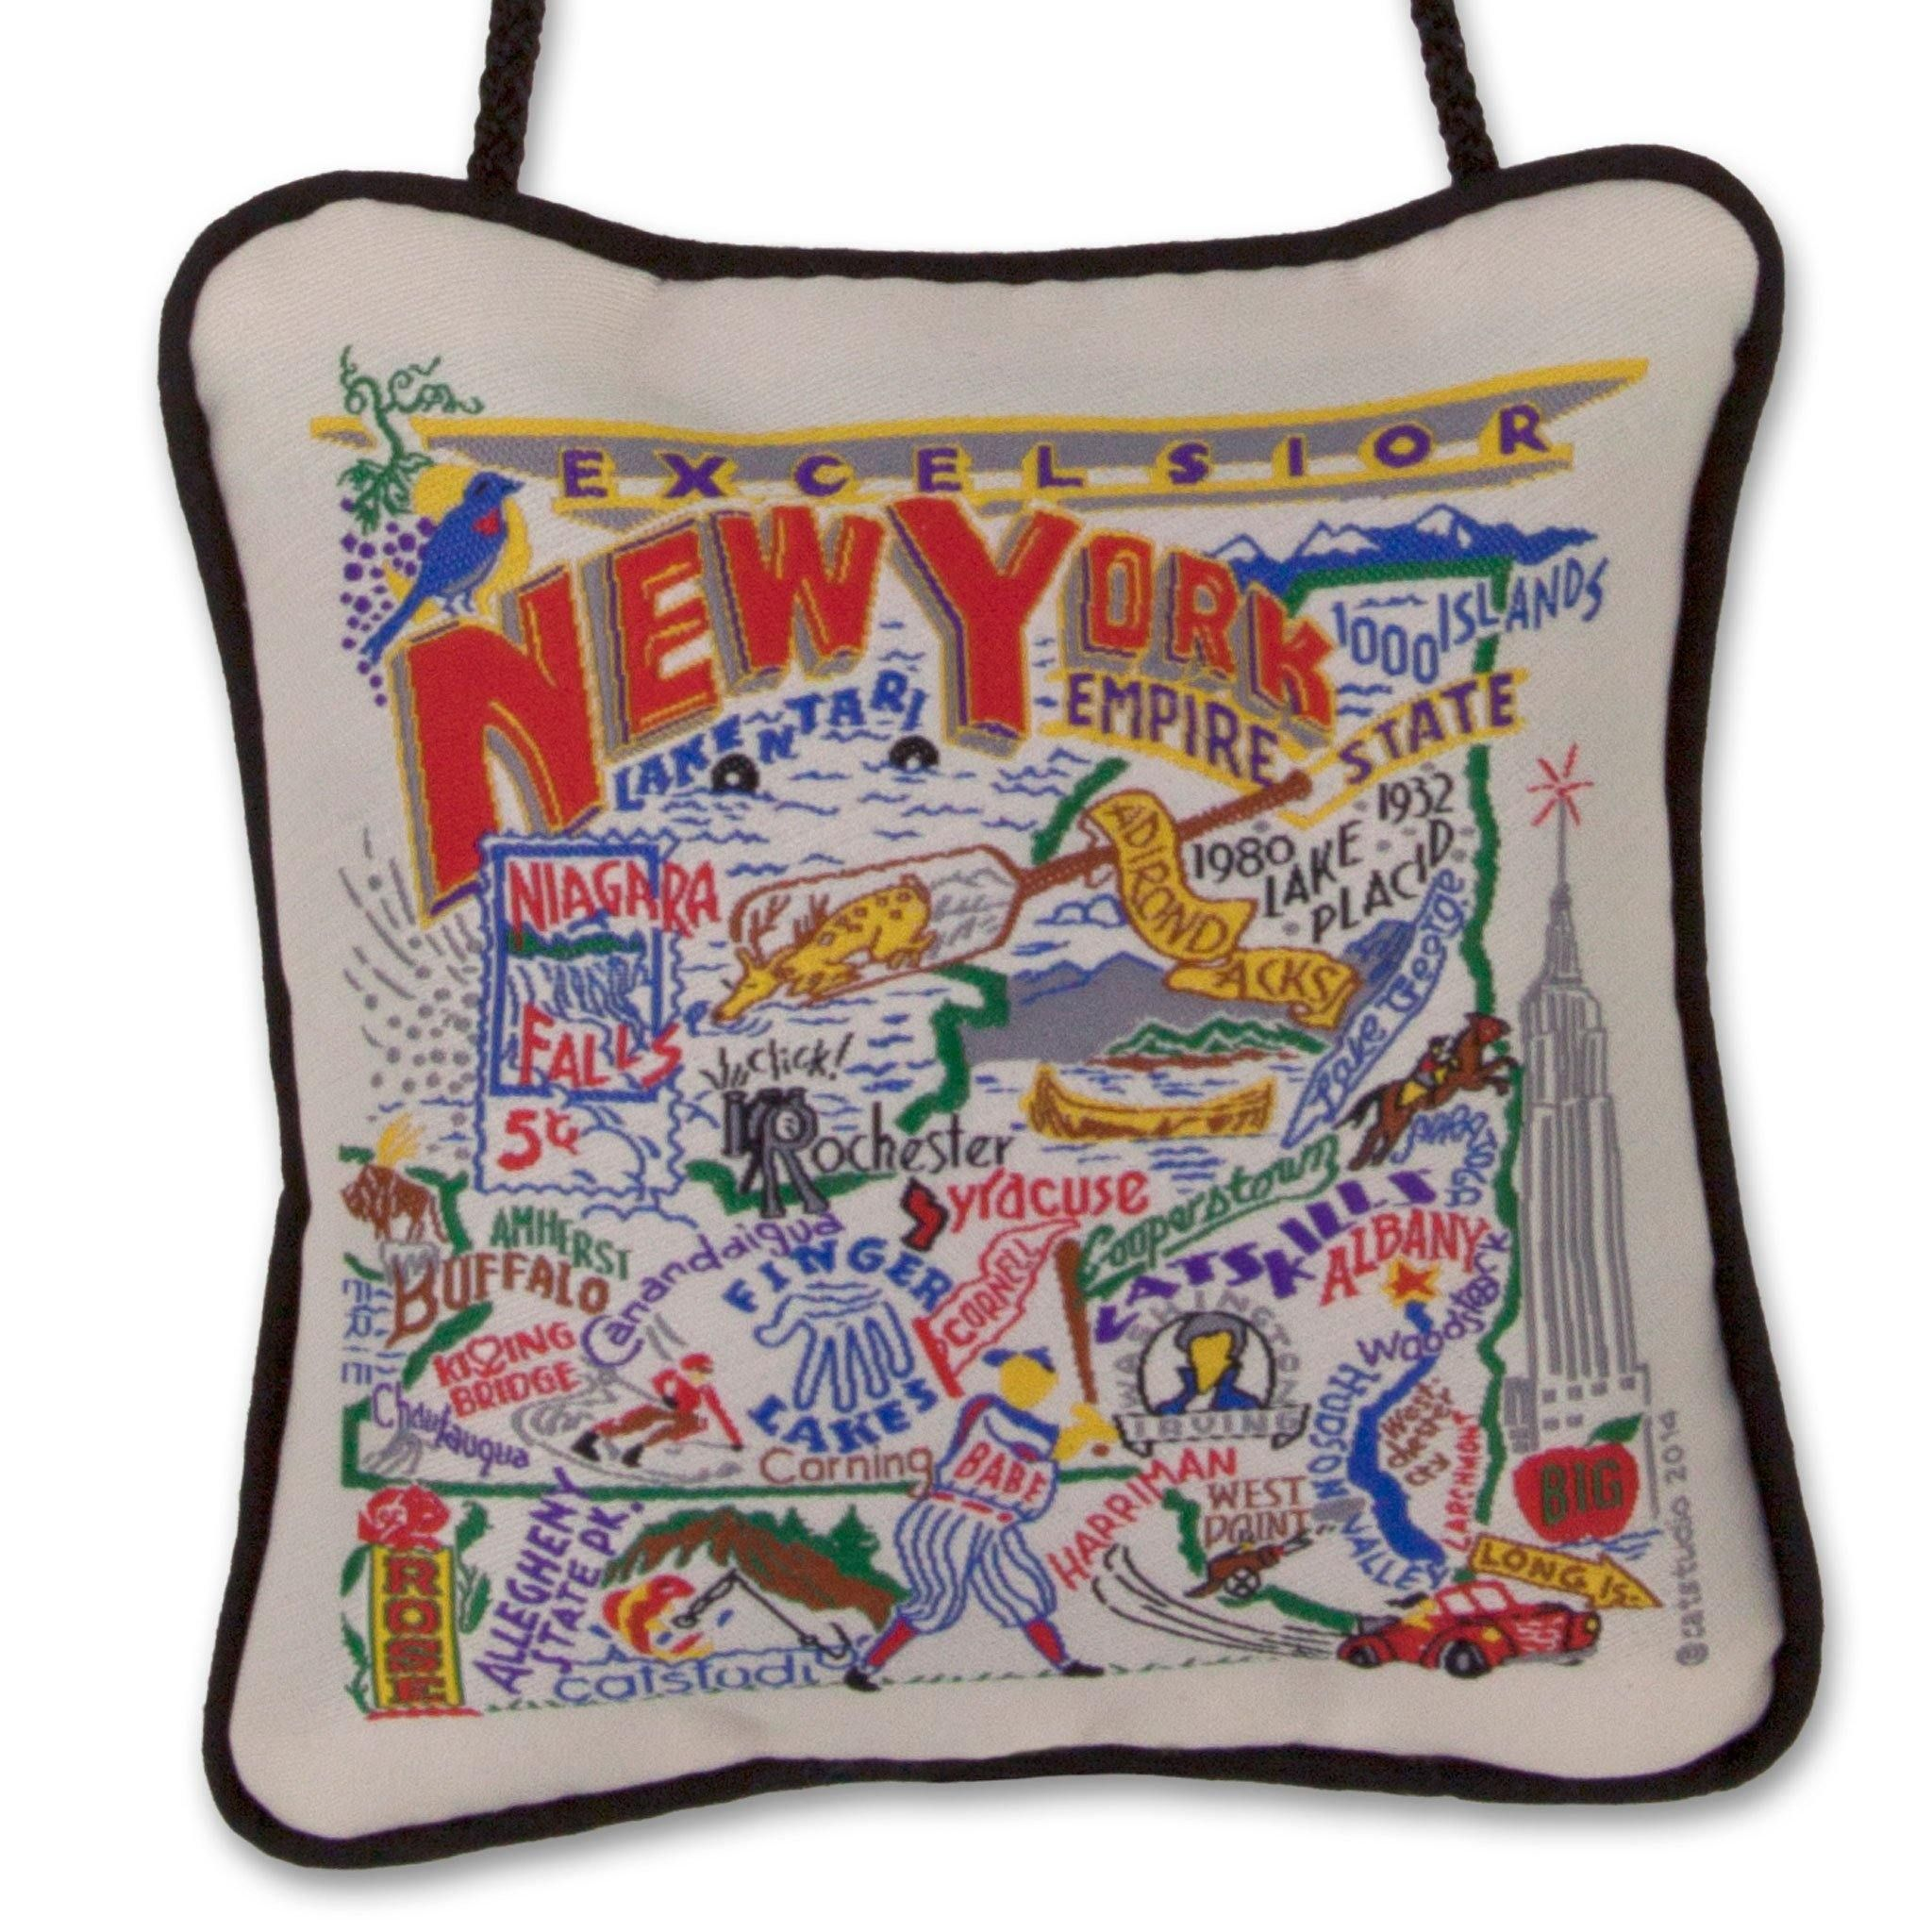 New York State Mini Pillow Ornament State Christmas Ornaments Holiday Hostess Gifts New York State